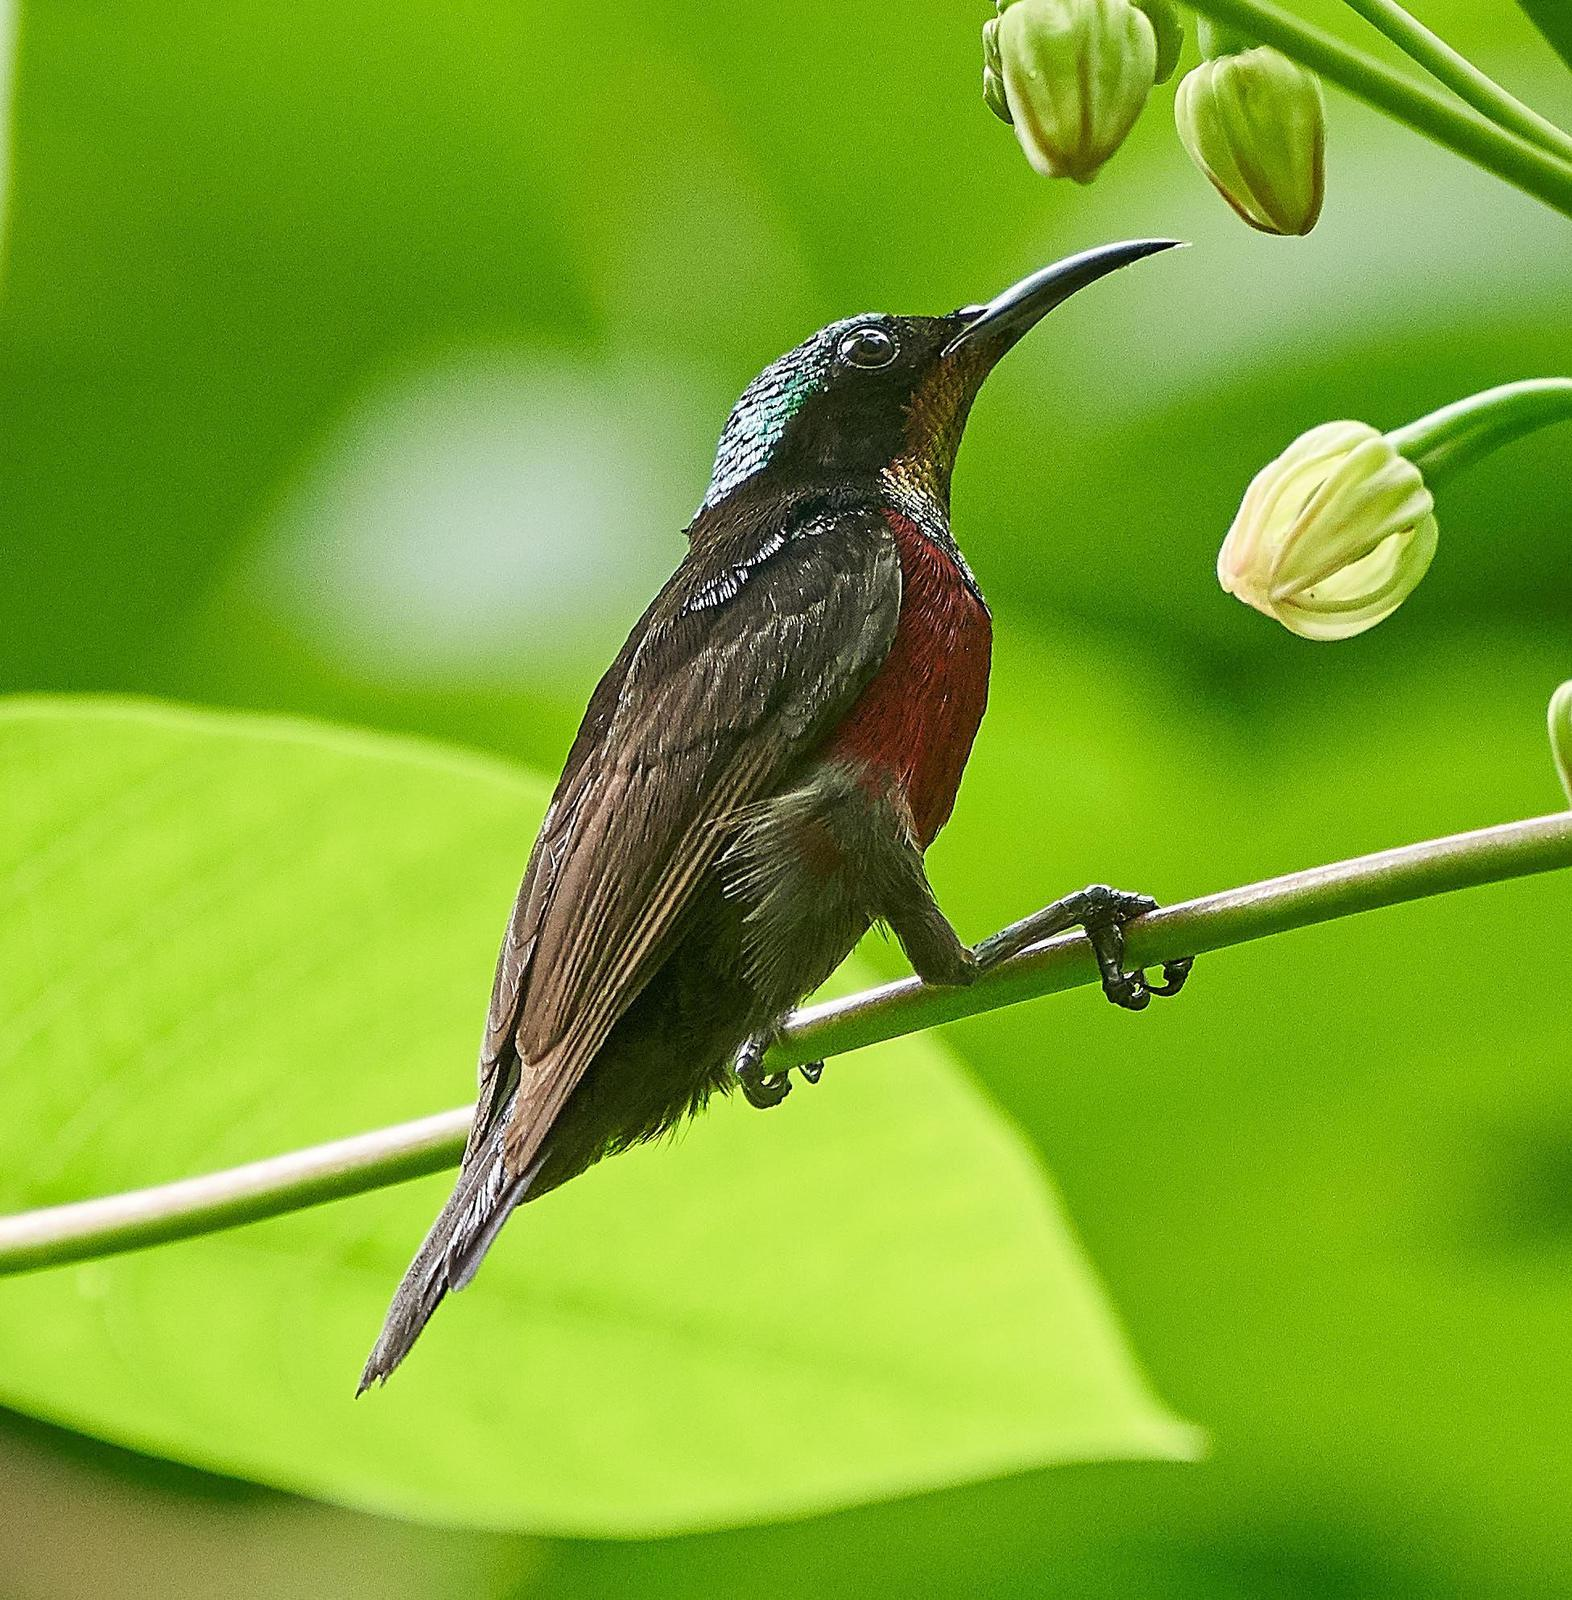 Van Hasselt's Sunbird Photo by Steven Cheong